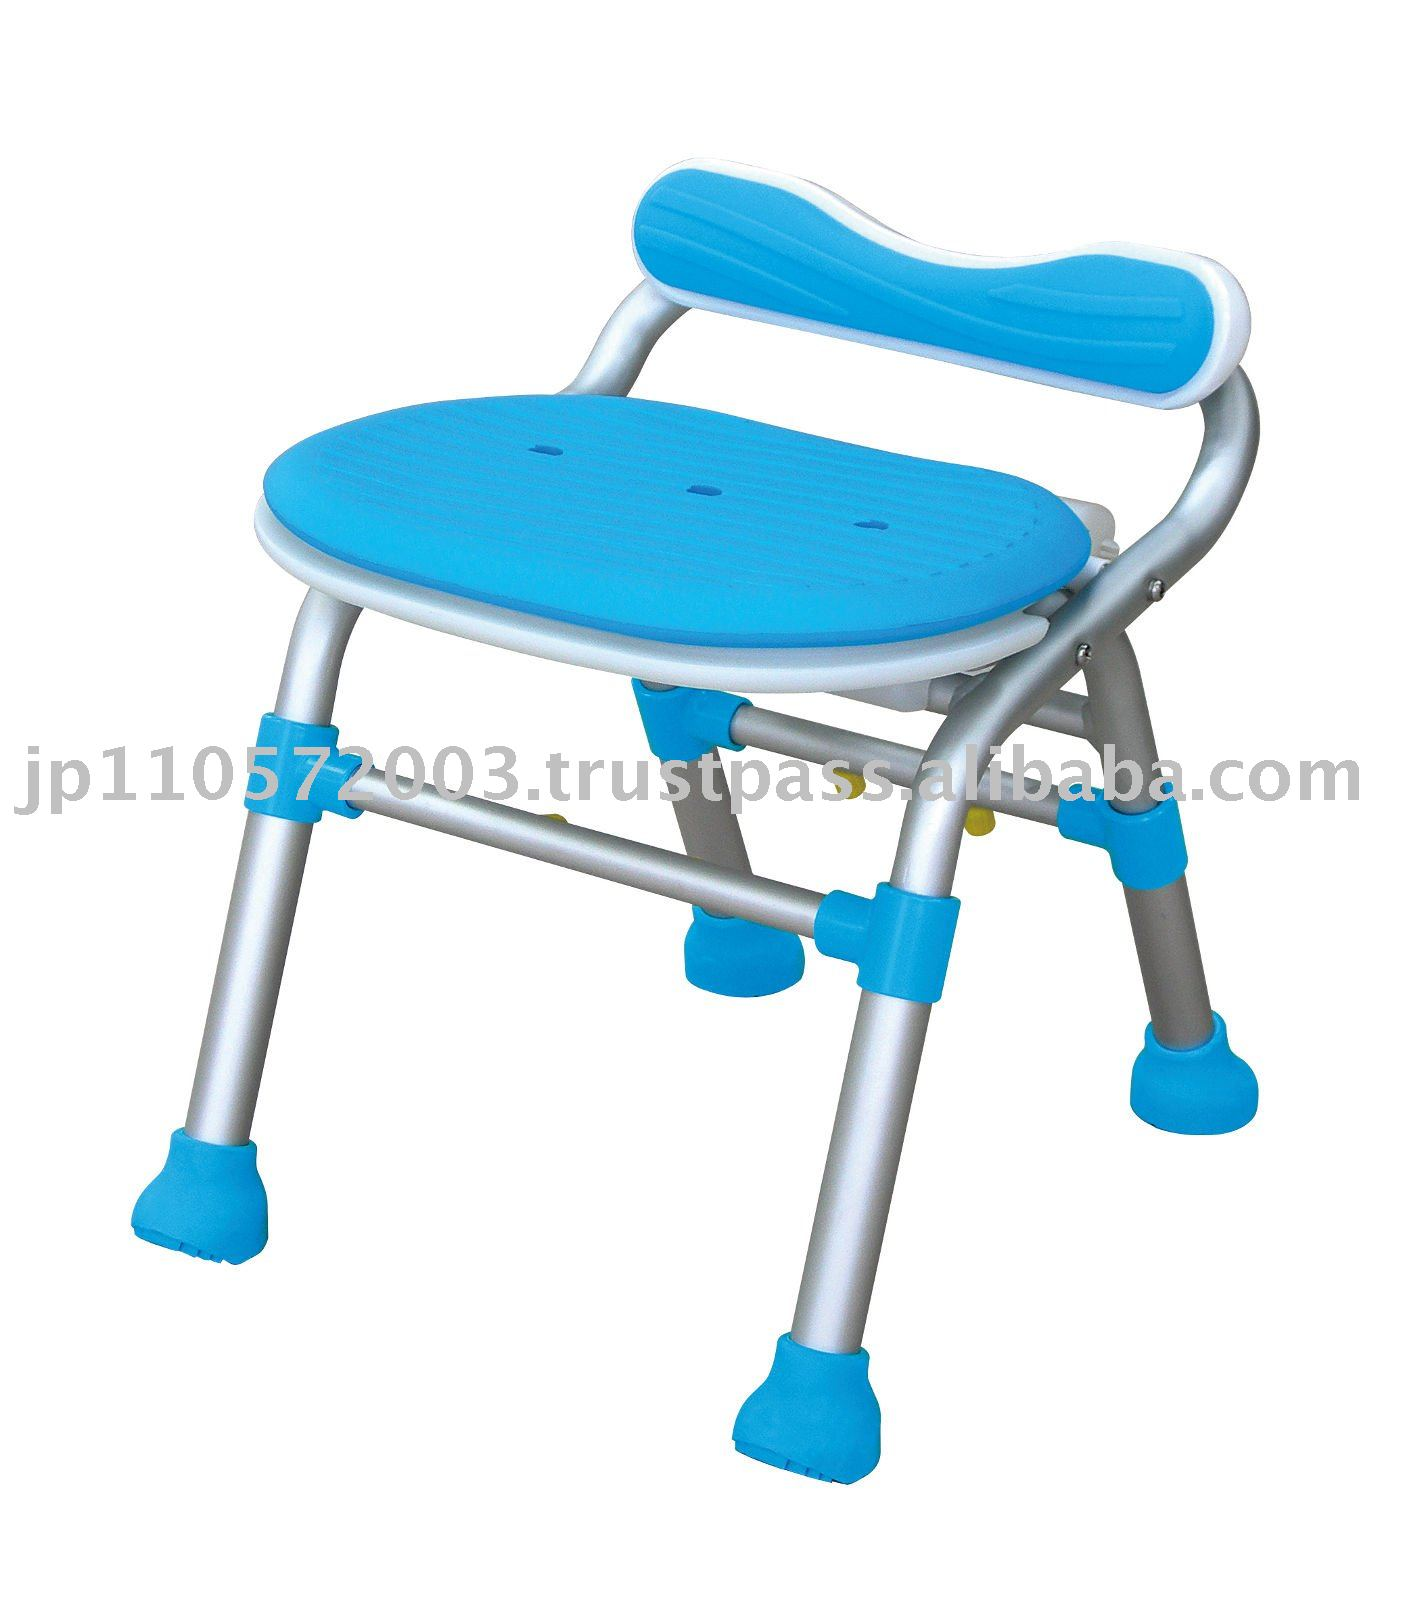 Colorful Shower Chair With Back Picture Collection - Bathtub Design ...